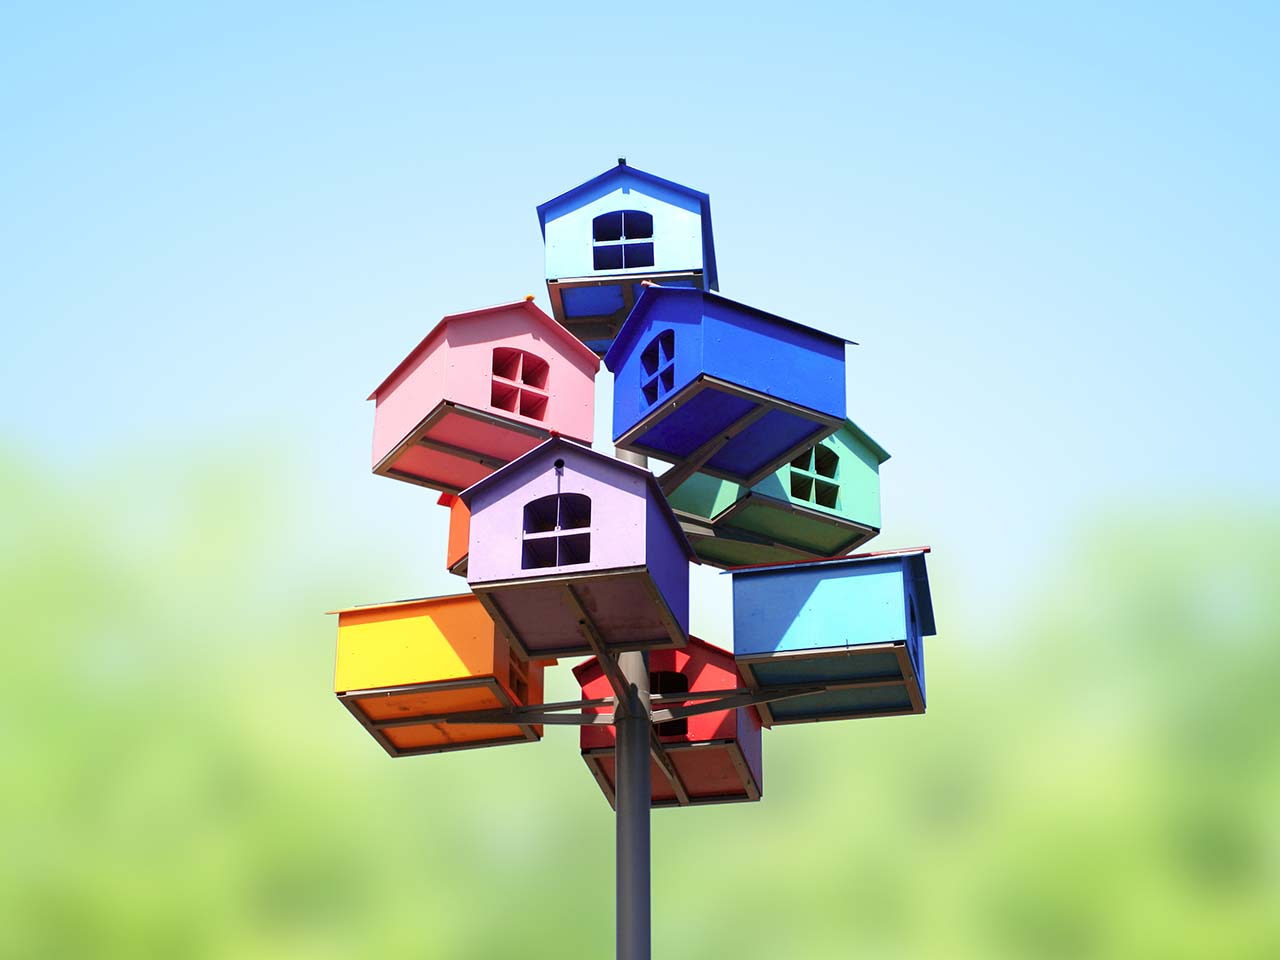 Colourful model houses as nesting boxes